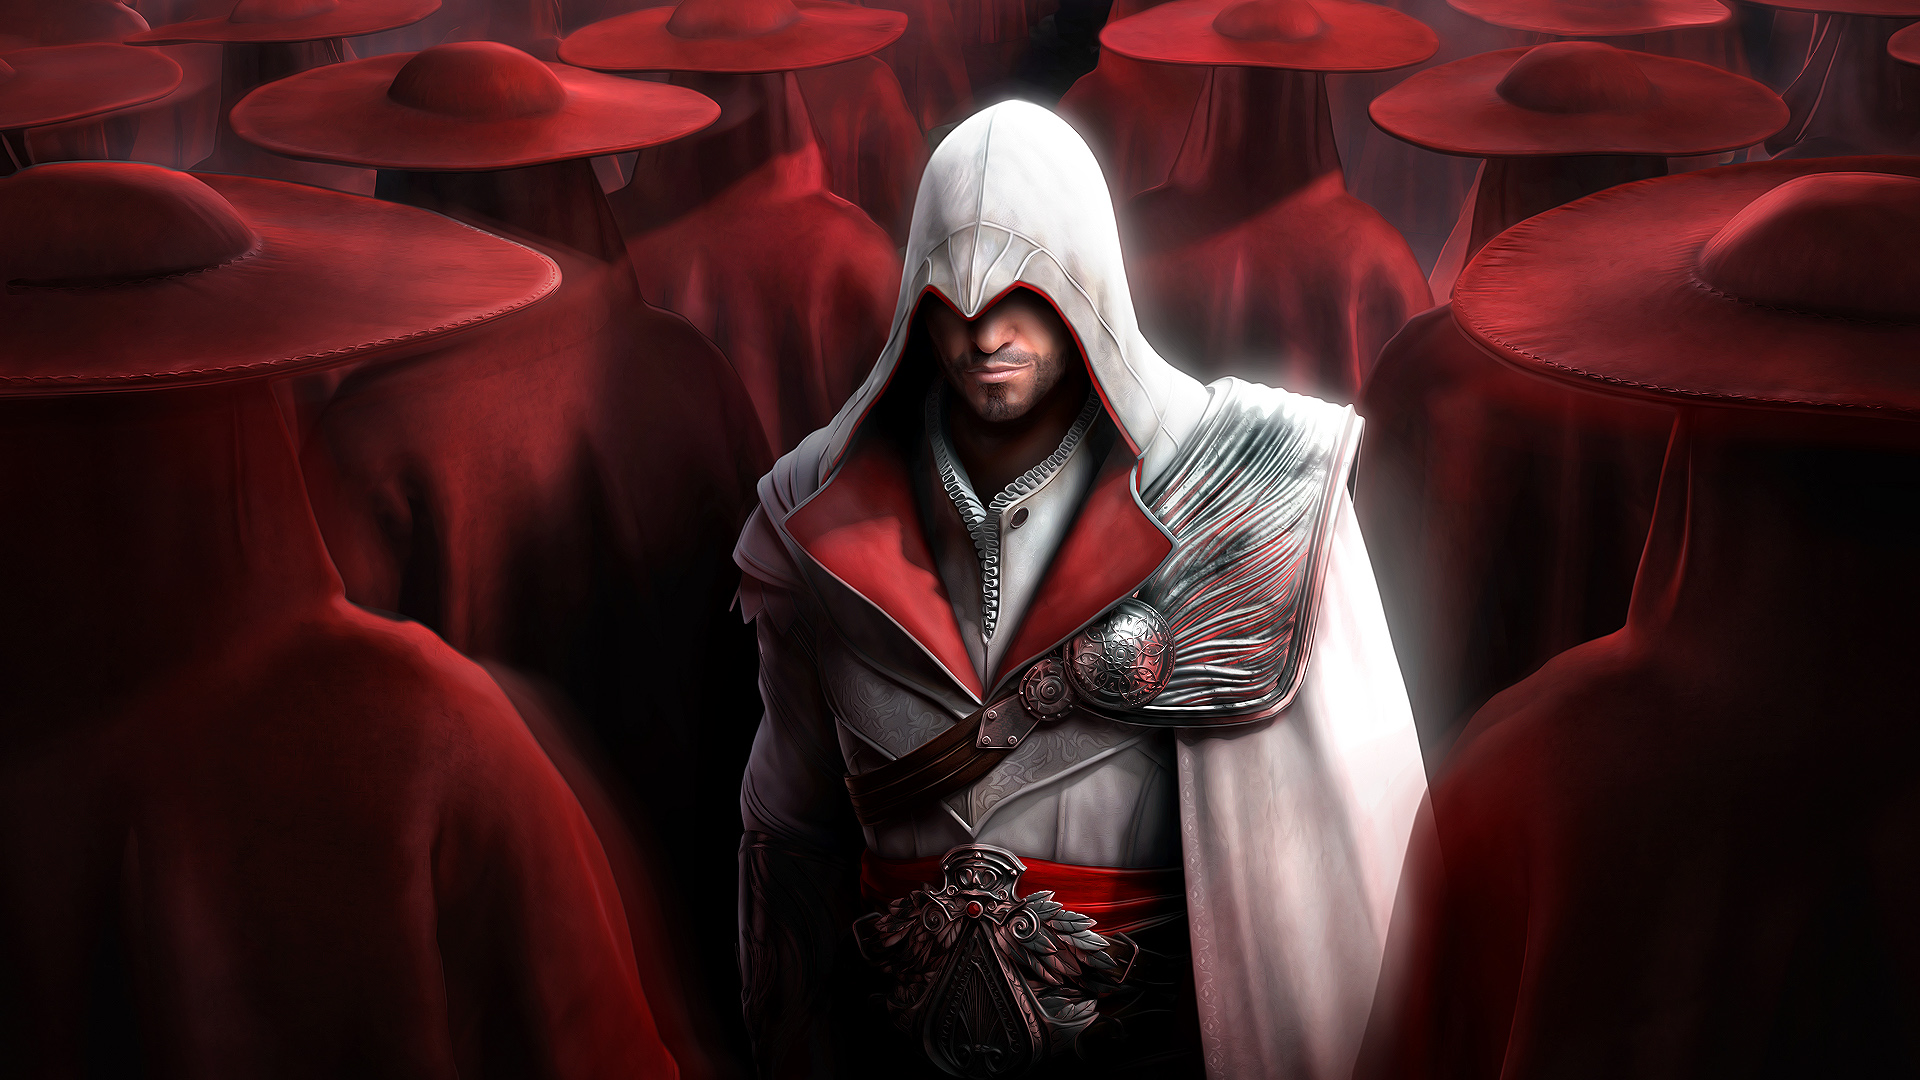 Wallpapers Assassins creed HD   Taringa 1920x1080